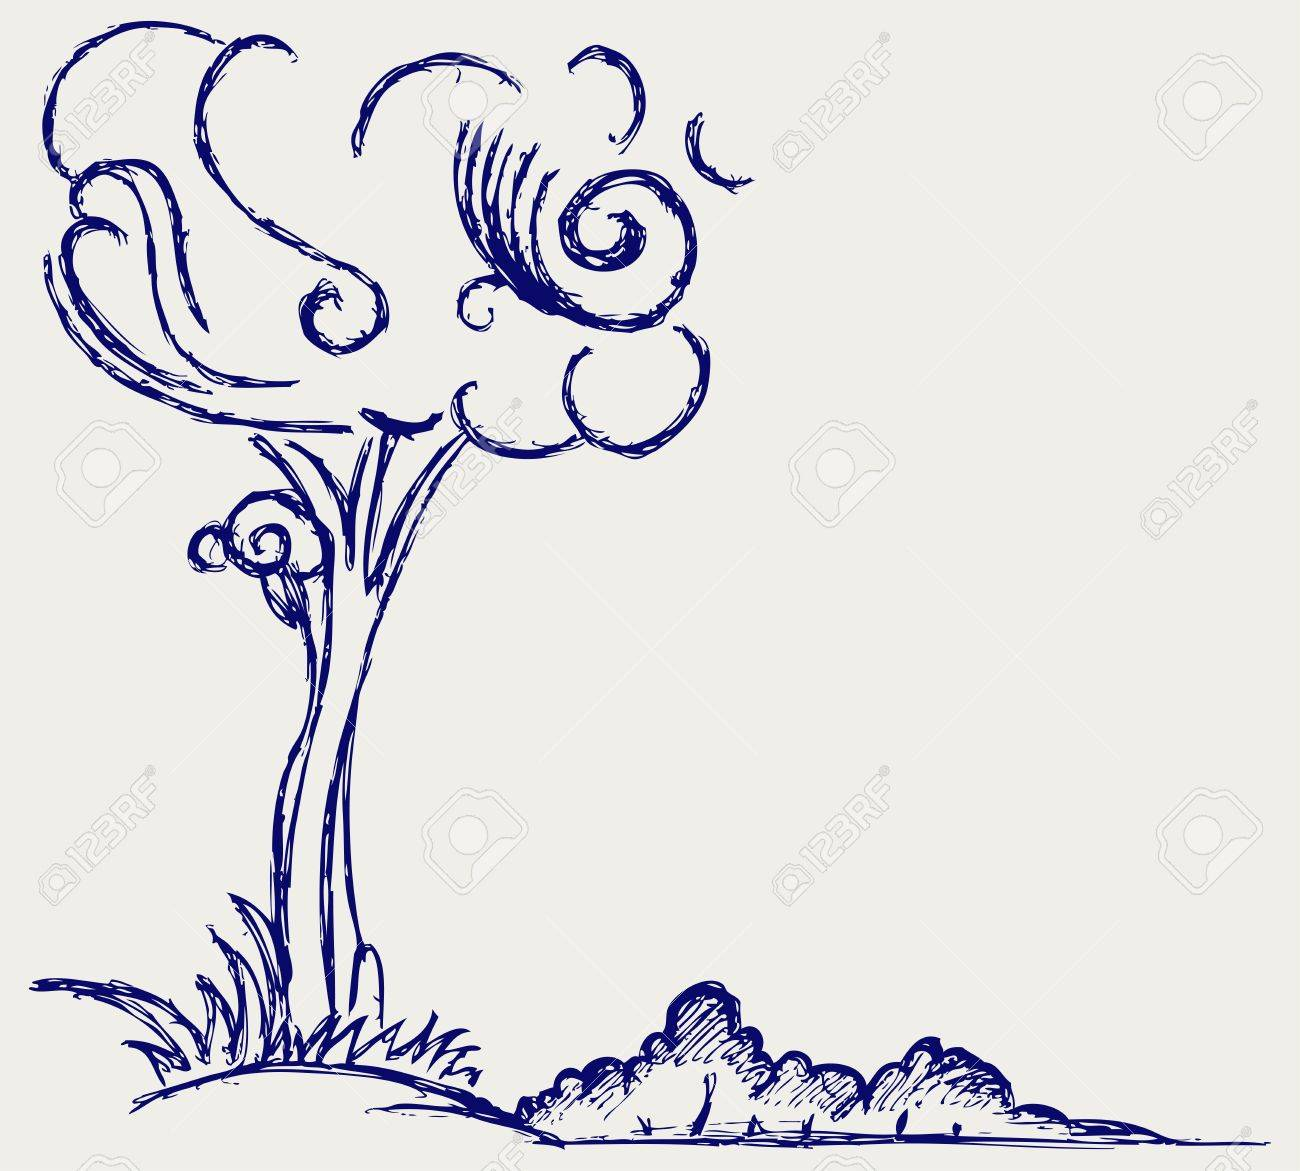 Trees silhouettes  Doodle style Stock Vector - 15868970